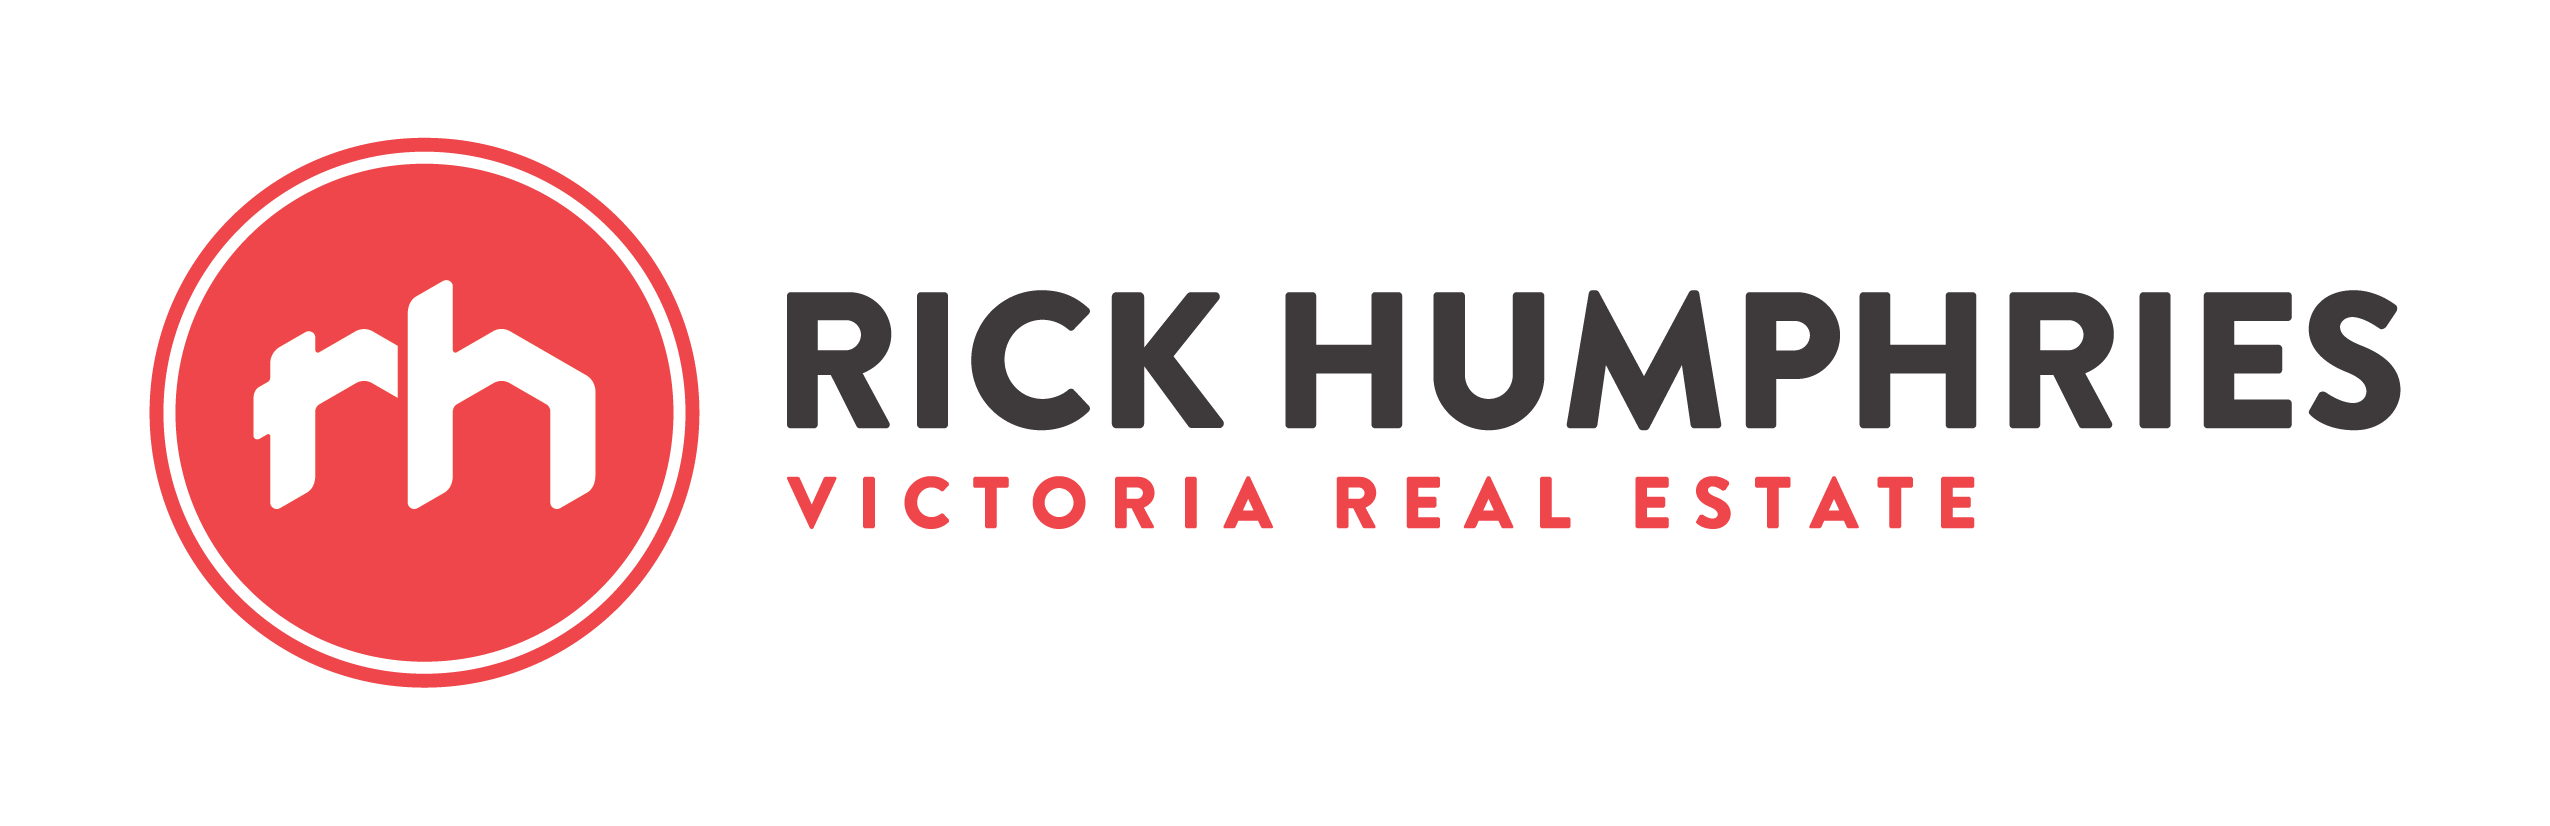 Rick Humphries Real Estate